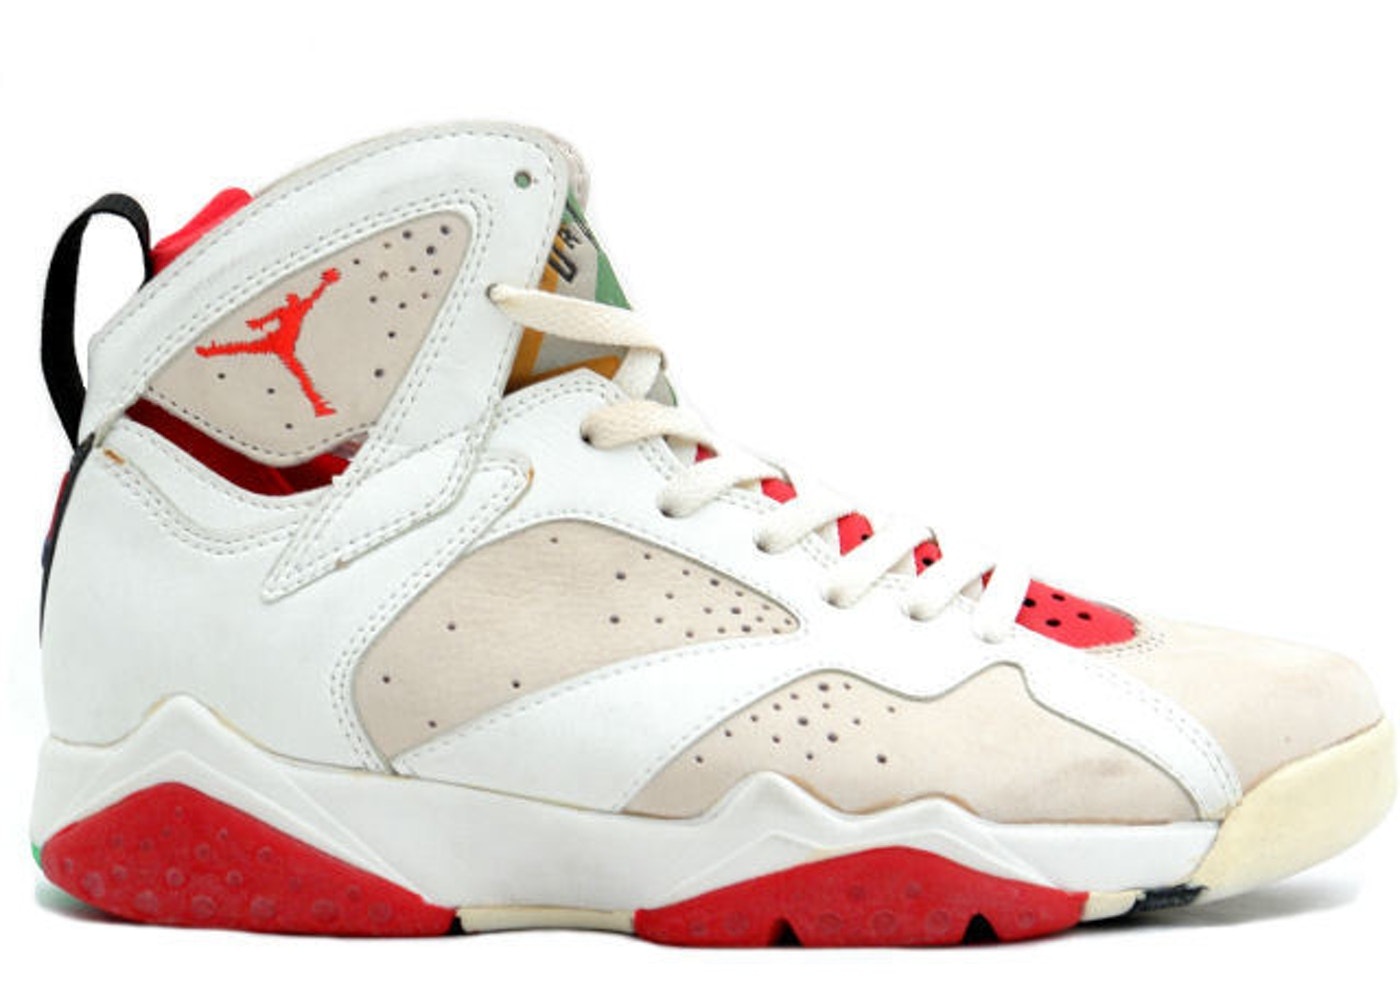 new style 9f538 f6229 Air Jordan 7 Shoes - Average Sale Price